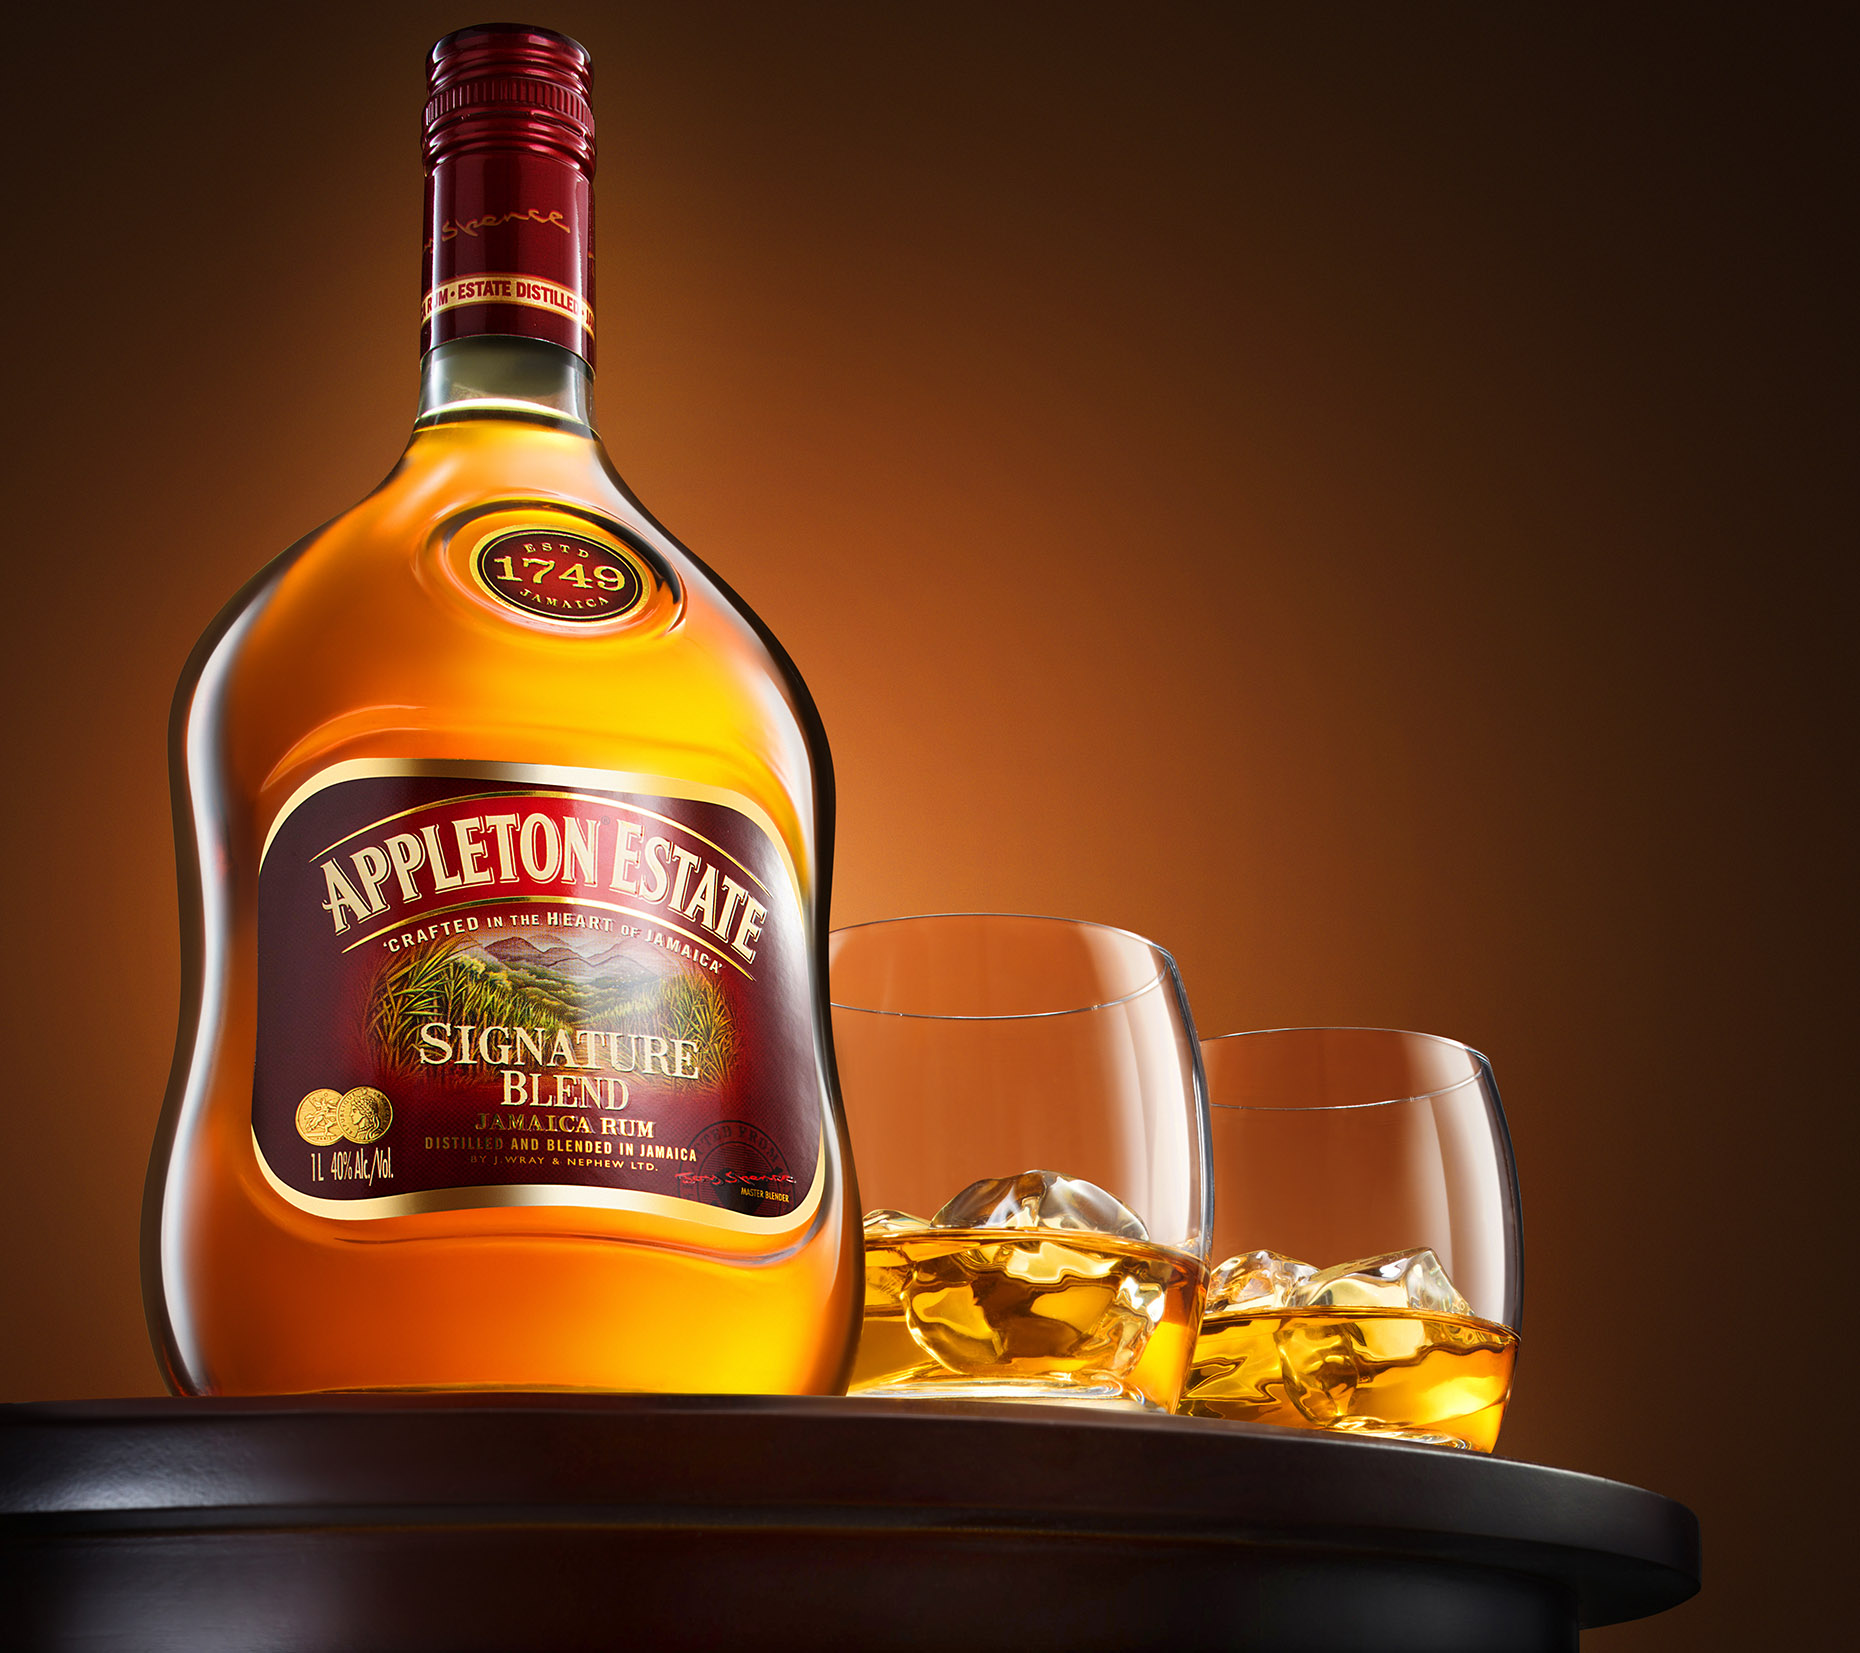 New-york-drink-phtographer-still-life-phtography-Appleton-Estate-rum